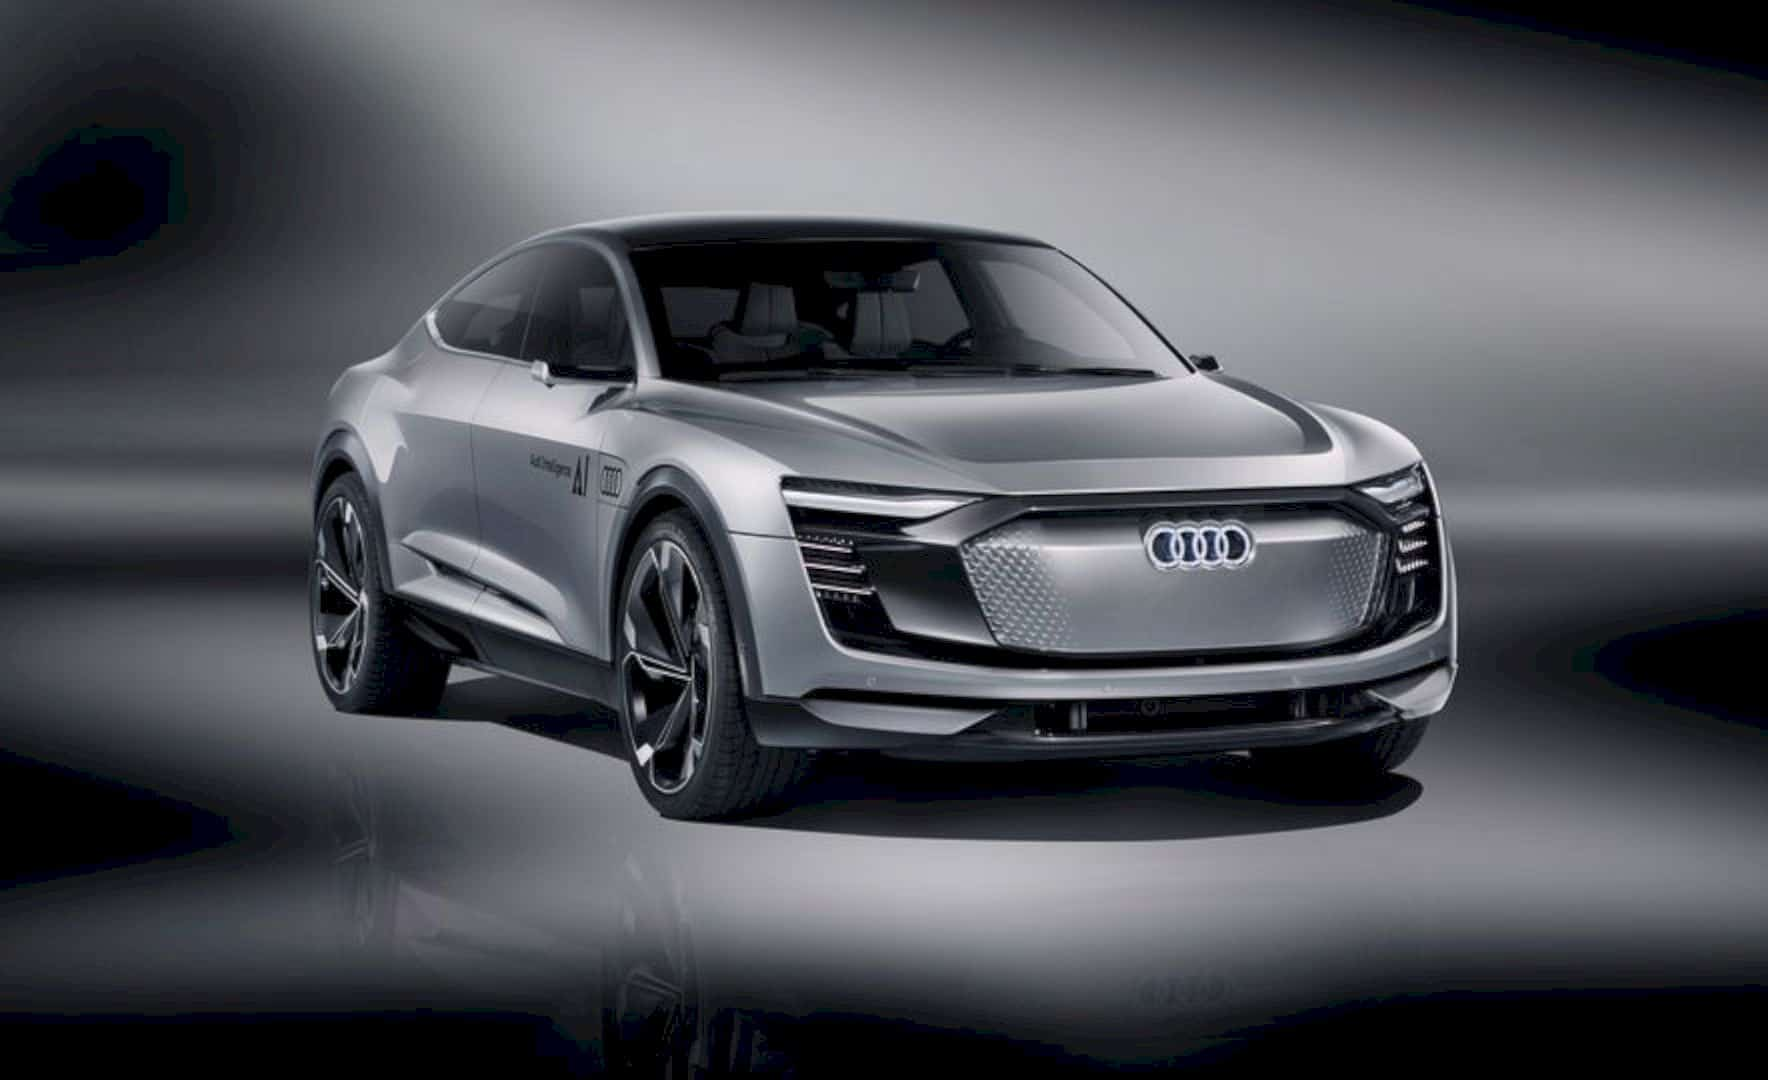 Audi Elaine Concept Car: Highly Automated for the Future